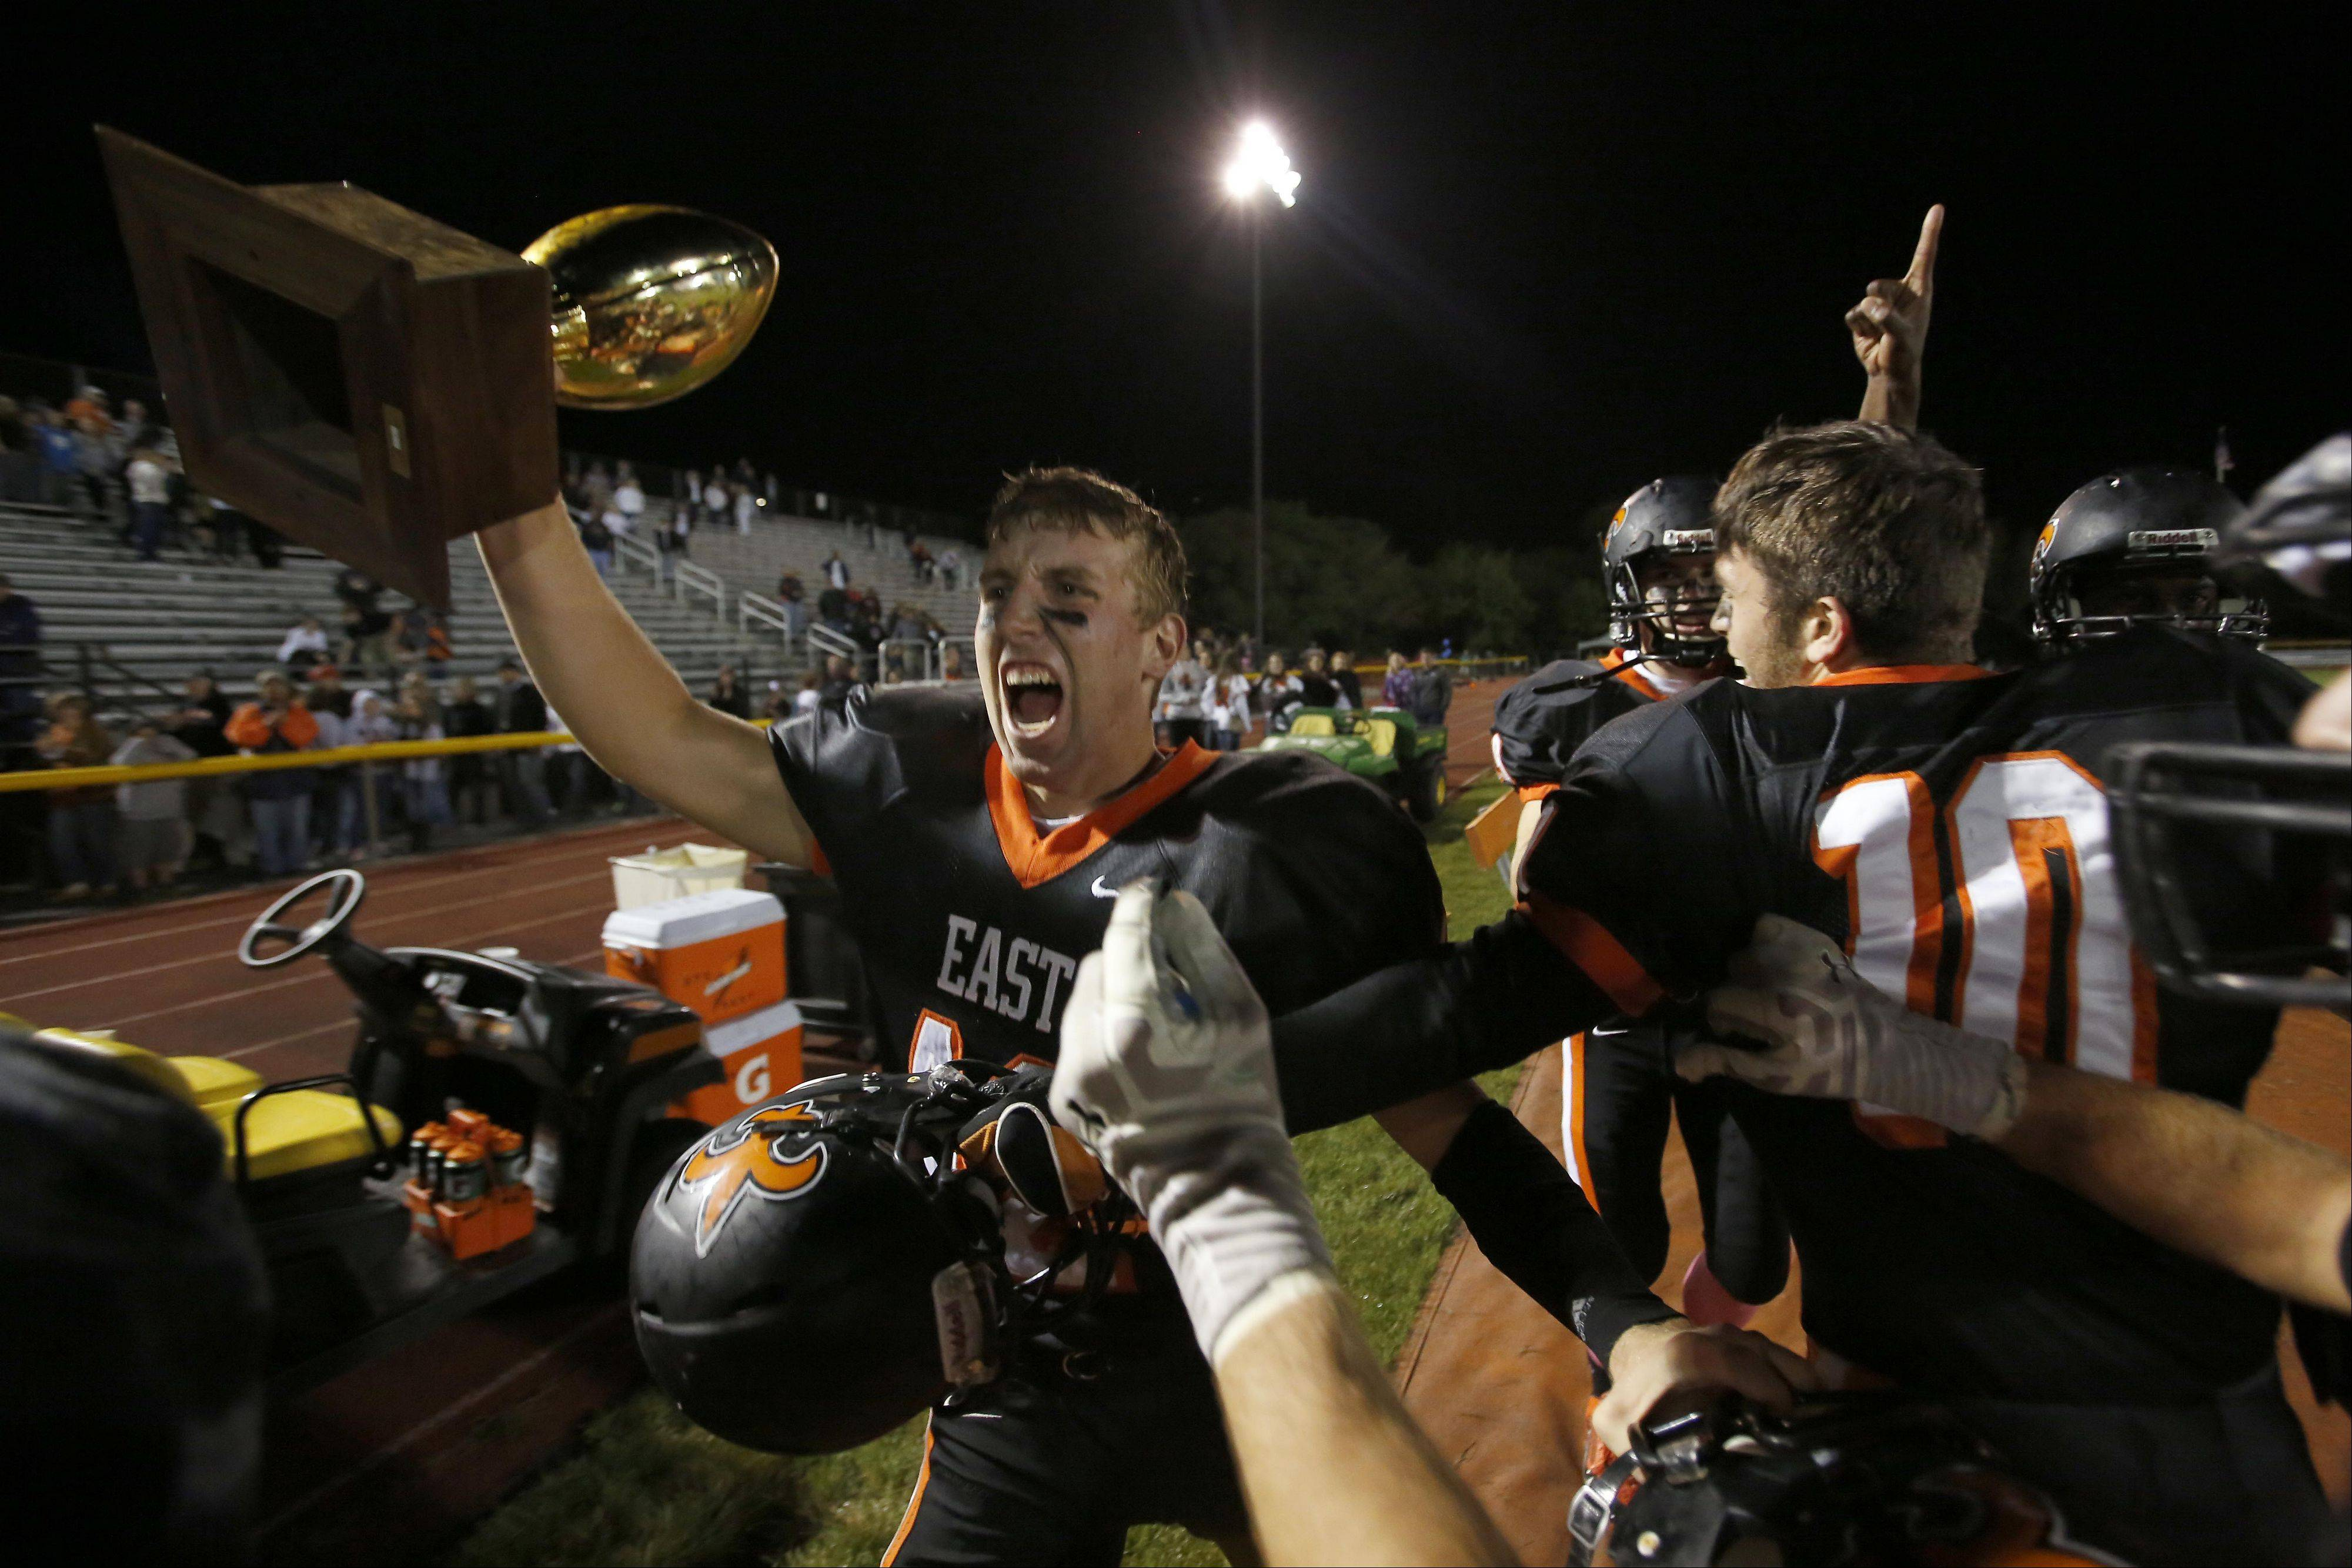 St. Charles East's Vince Locascio hoists the trophy after the Saints won in overtime against St. Charles North .